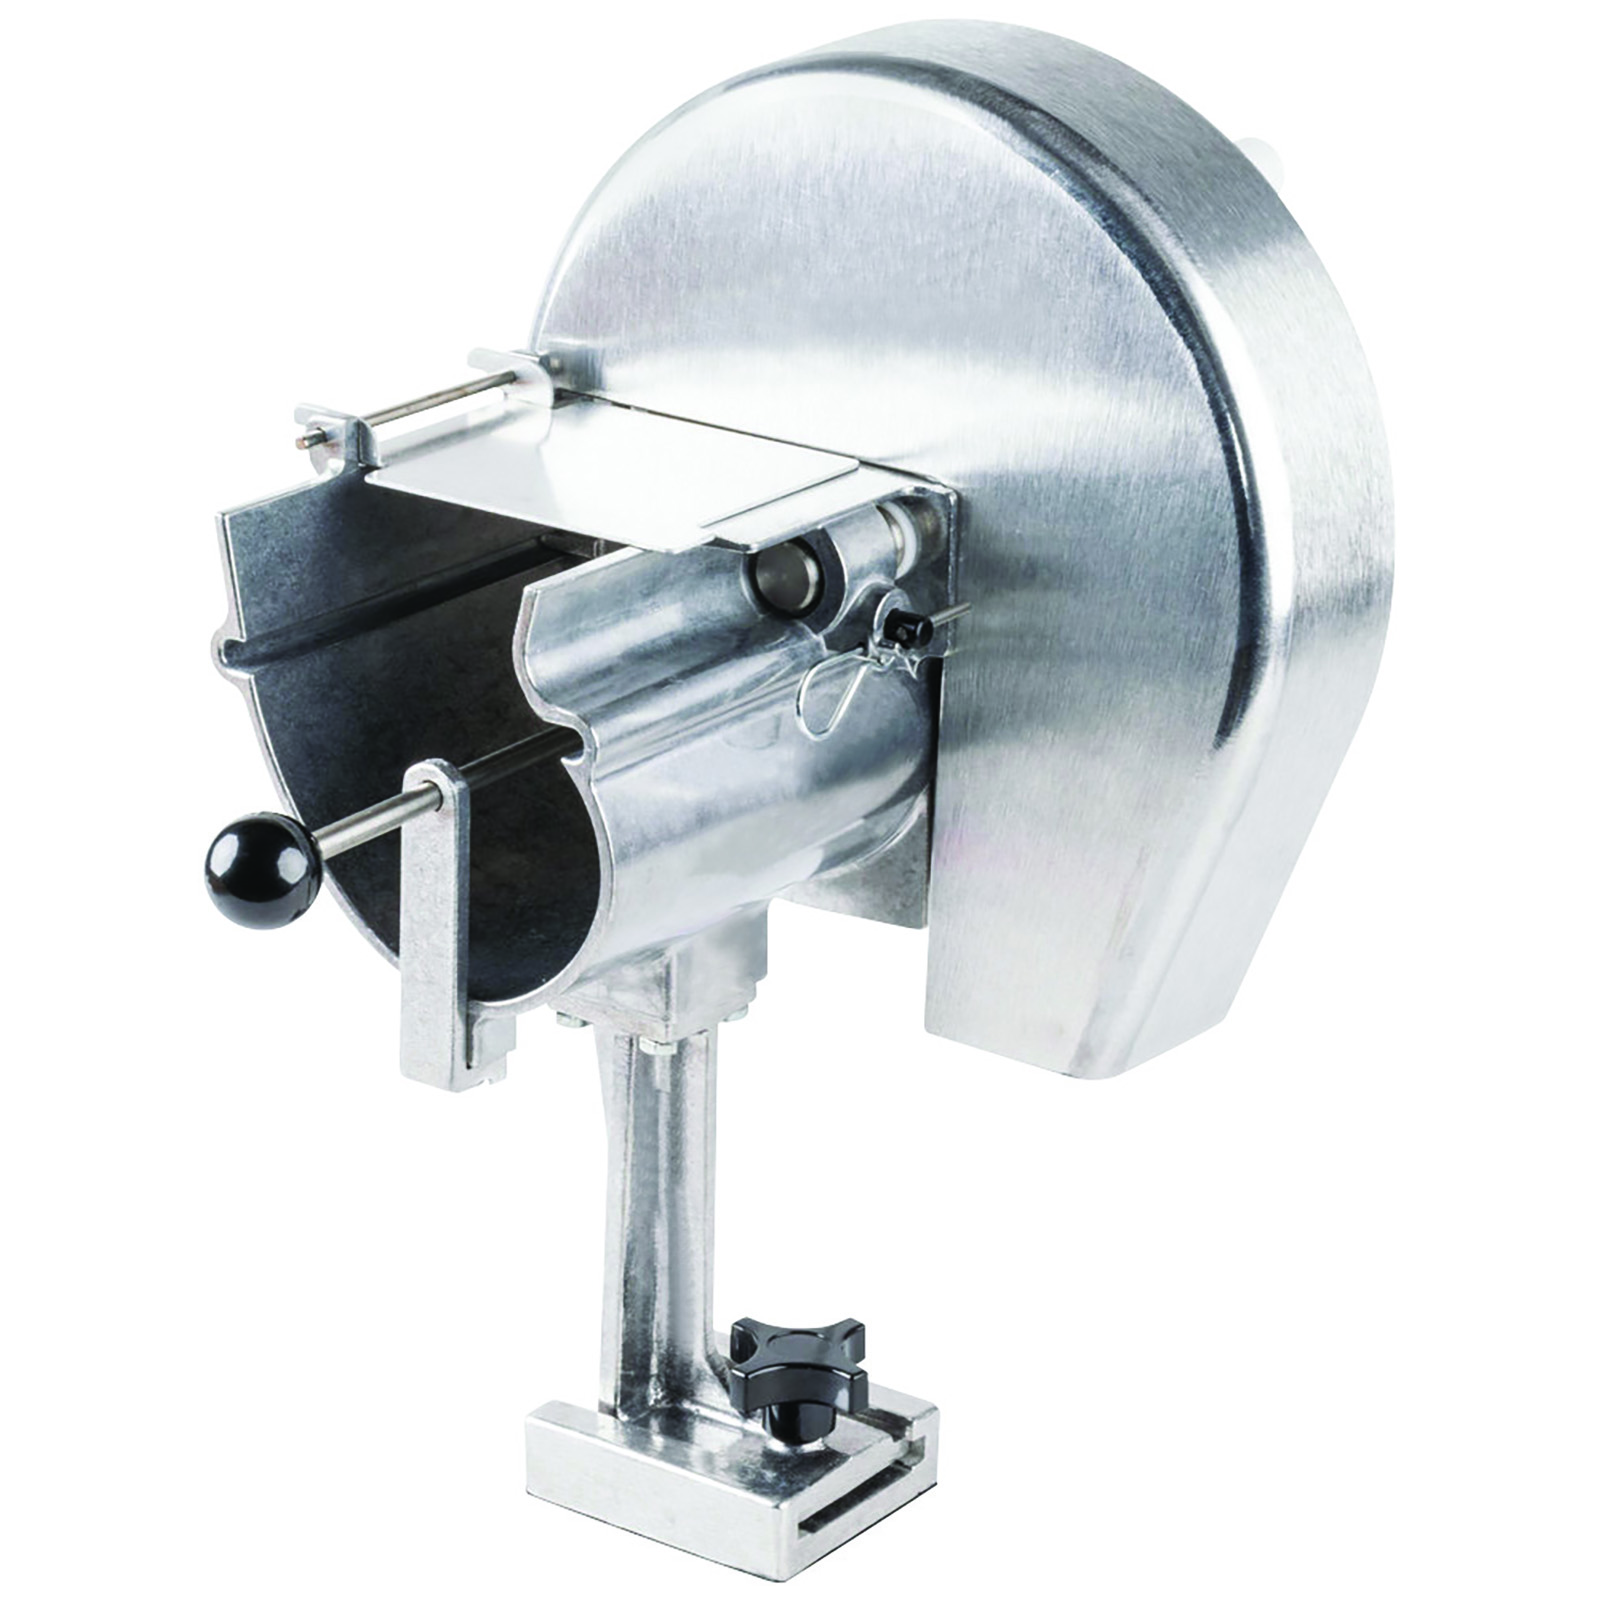 Winco FVS-1 fruit / vegetable slicer, cutter